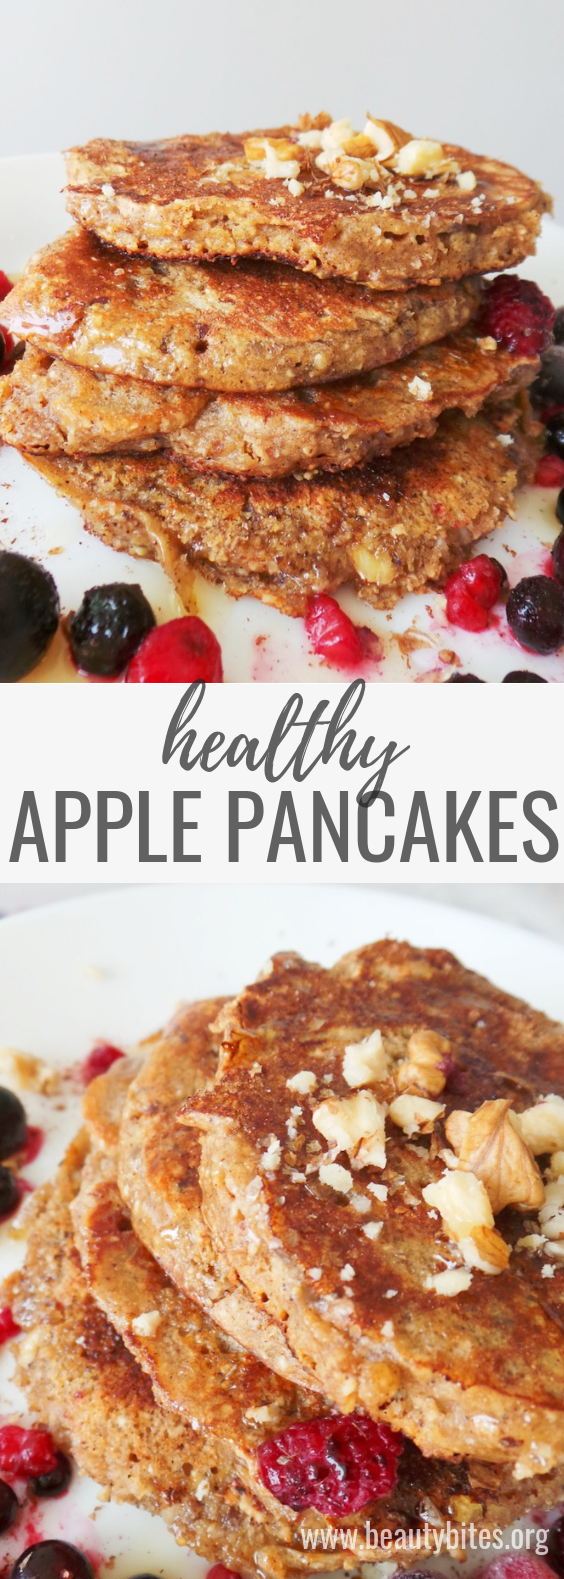 Apple Pancakes With Oats – Healthy & Easy Breakfast images